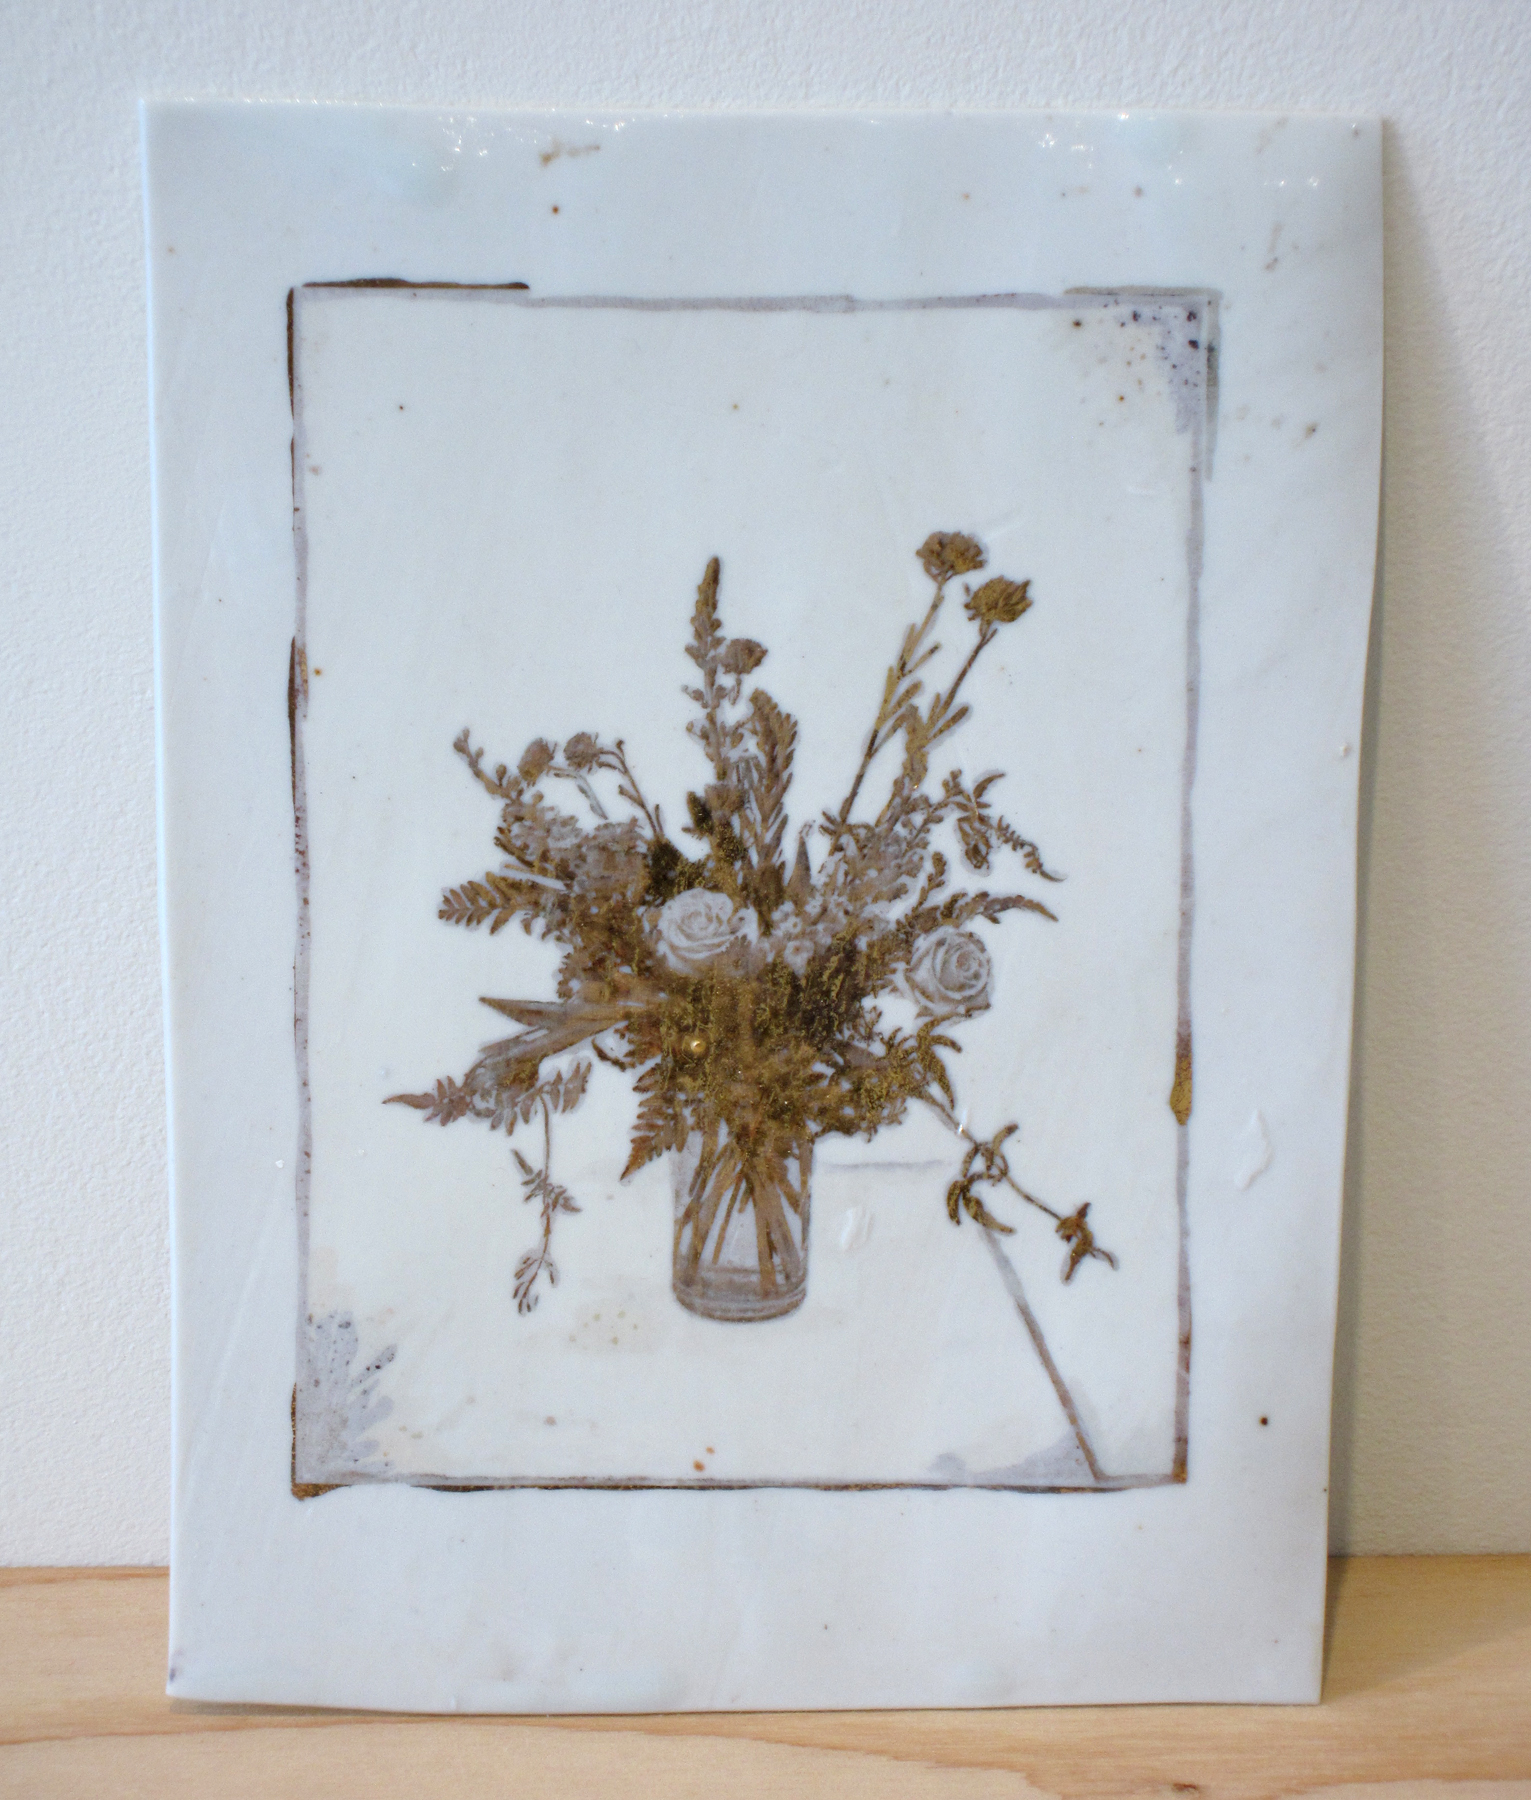 """ERIK SCOLLON   Flowers from The Oakland (Stay the Way You Are), 2013, gold luster on porcelain, 8 1/4"""" x 6"""" x 1/16"""""""